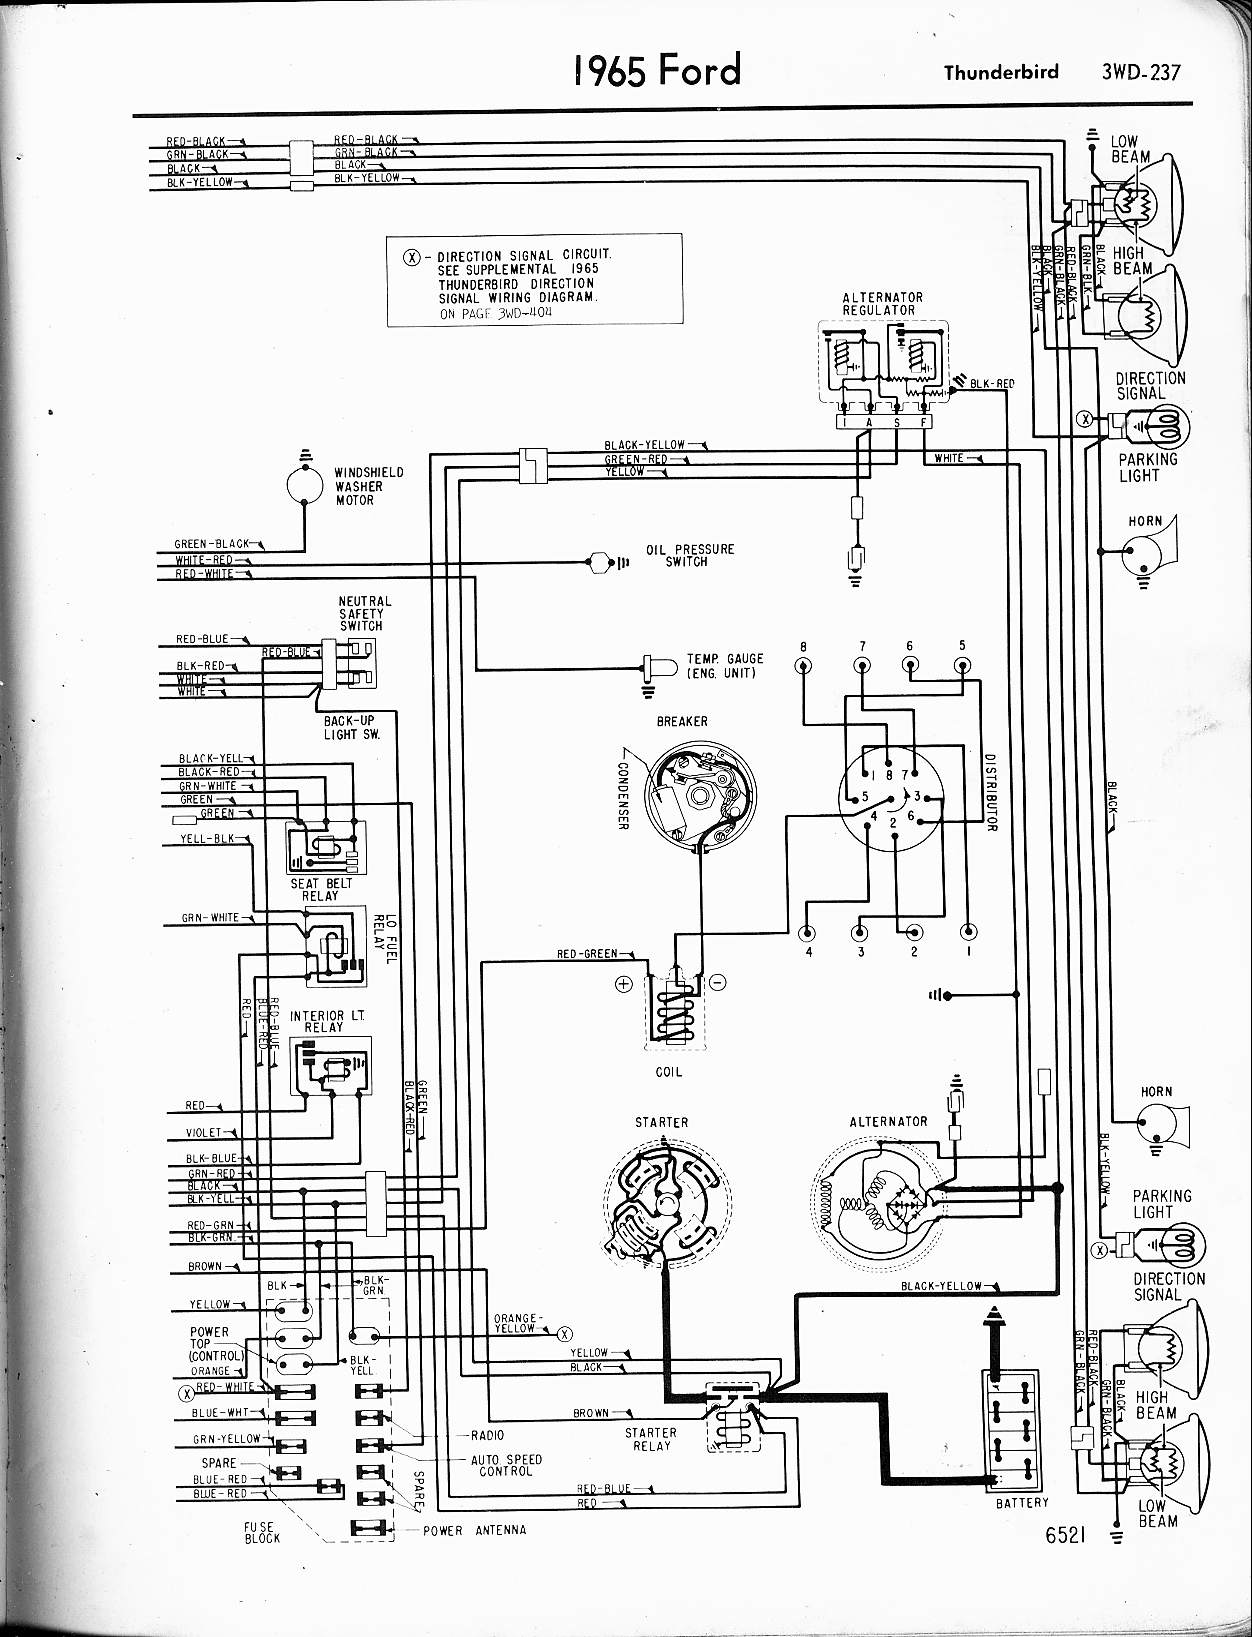 MWire5765 237 57 65 ford wiring diagrams Ford E 350 Wiring Diagrams at gsmx.co